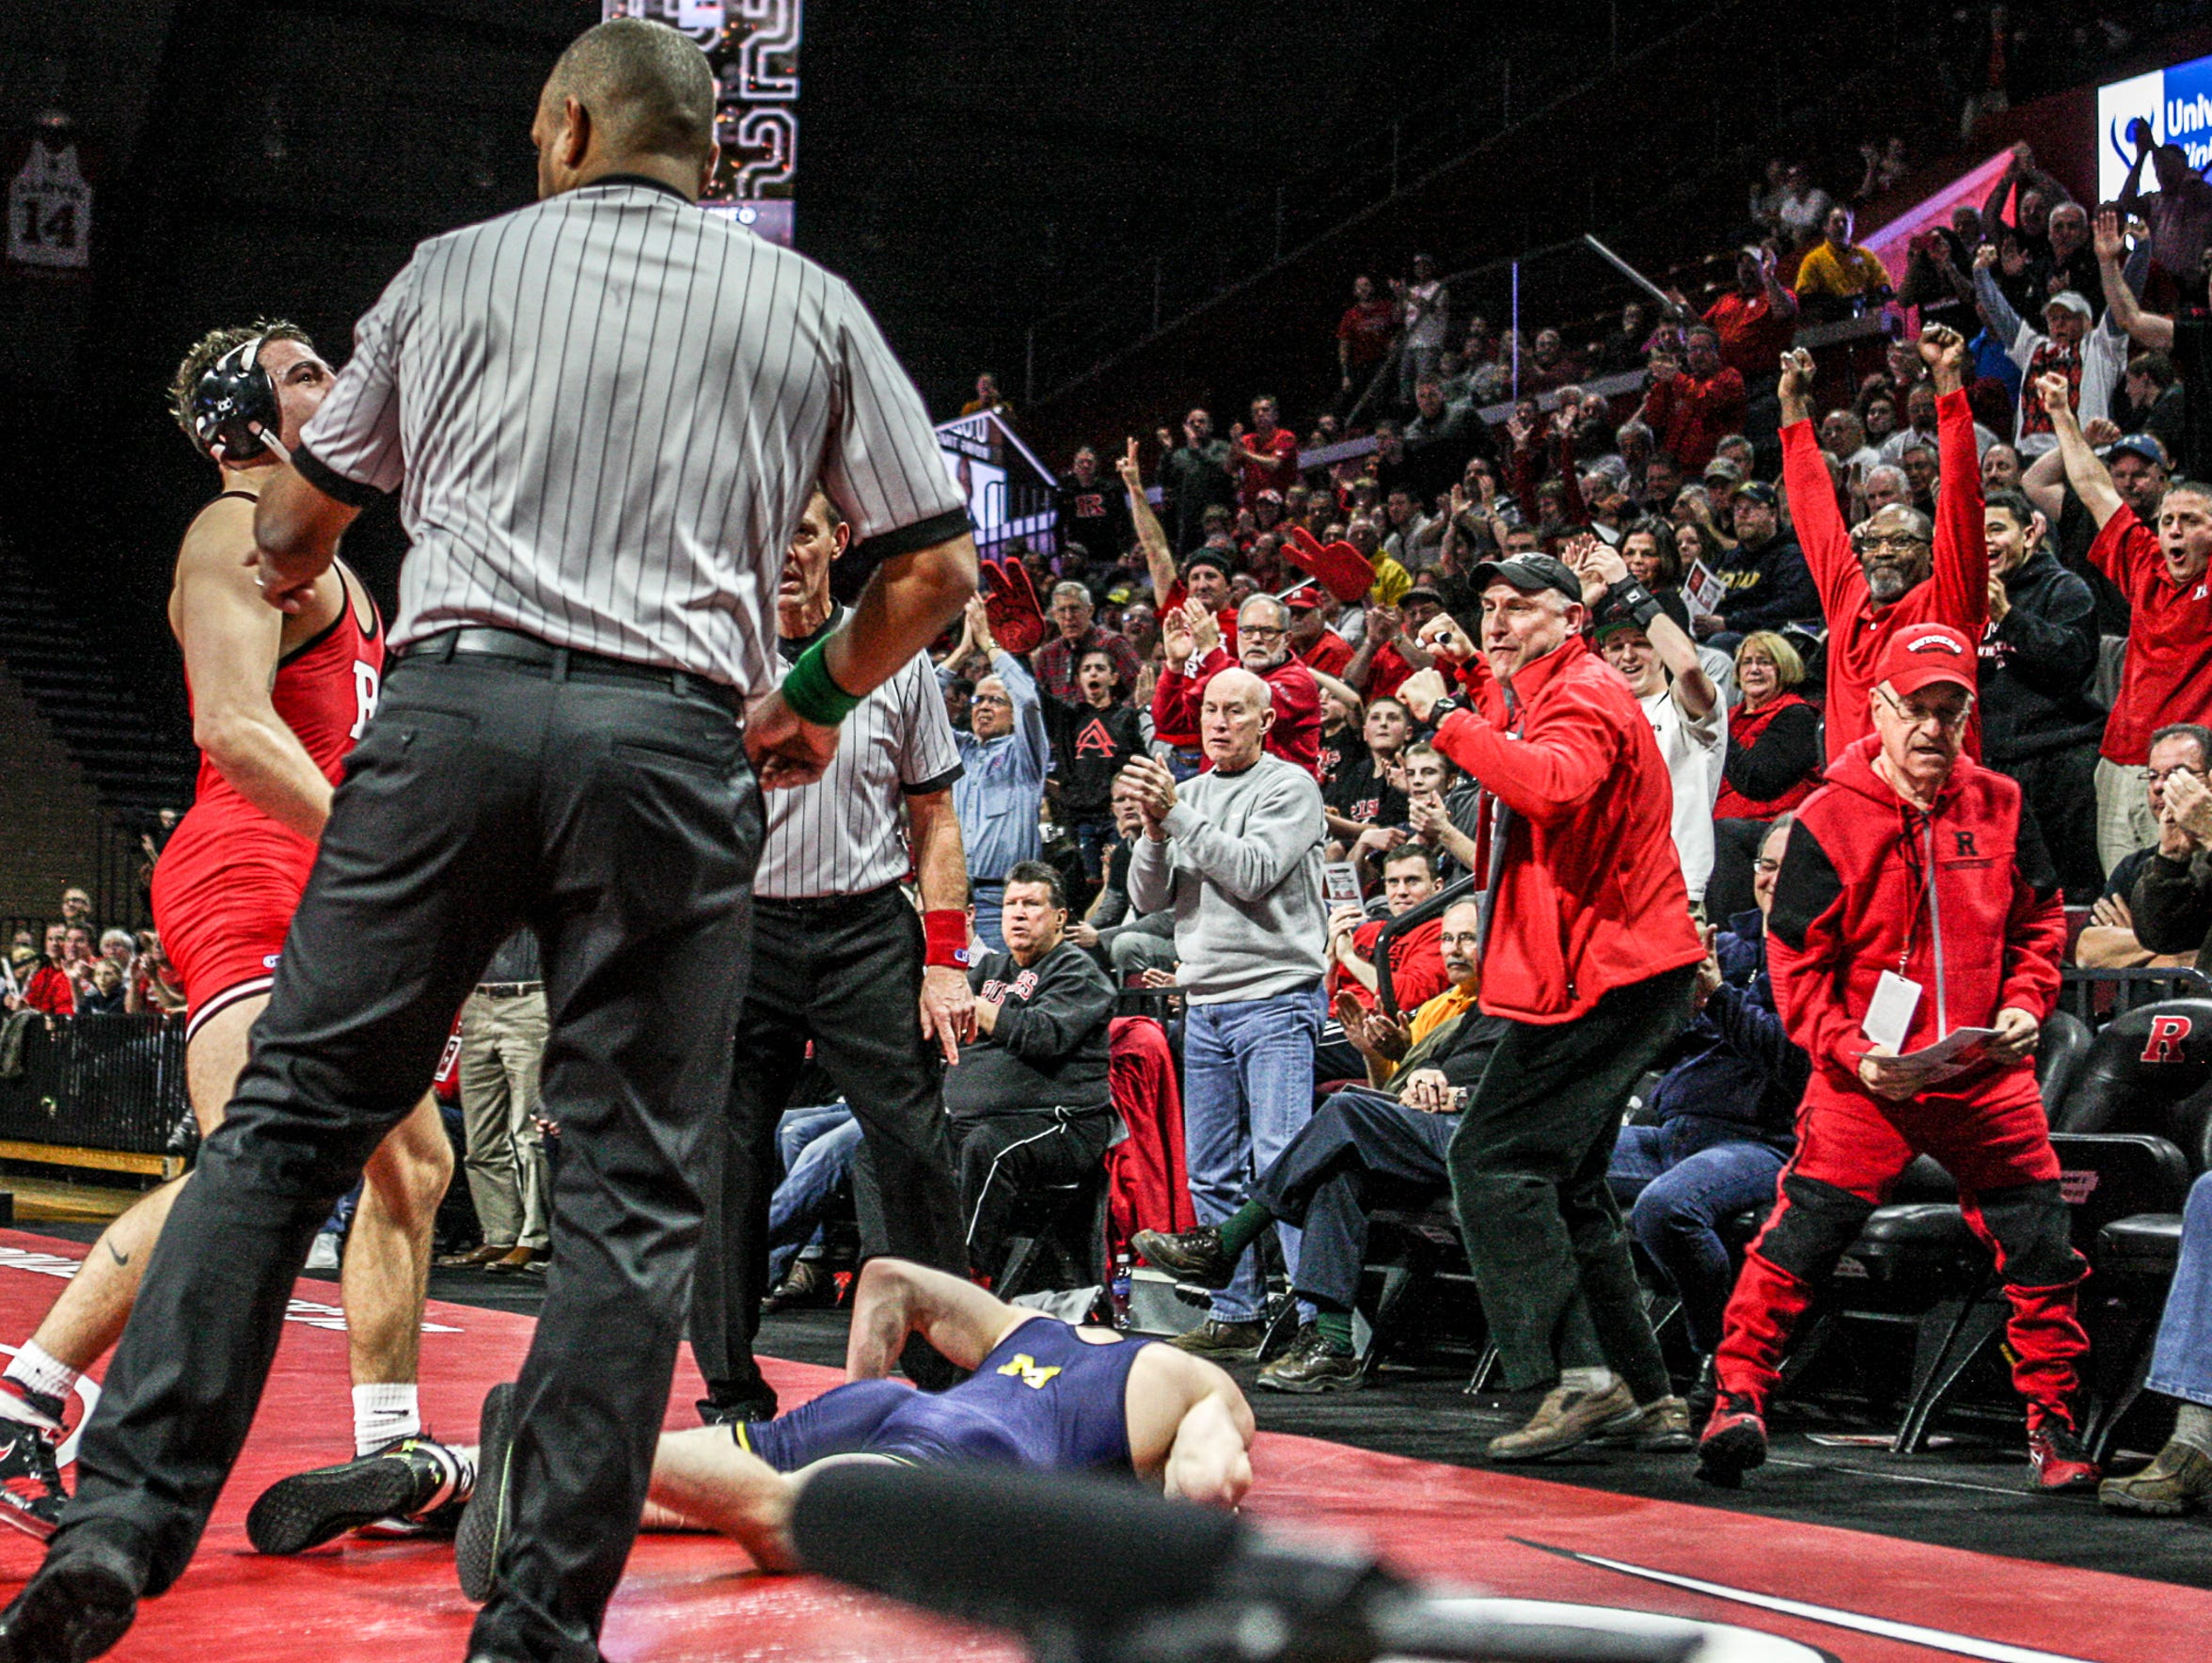 Rutgers wrestling is on pace to rank in the top six